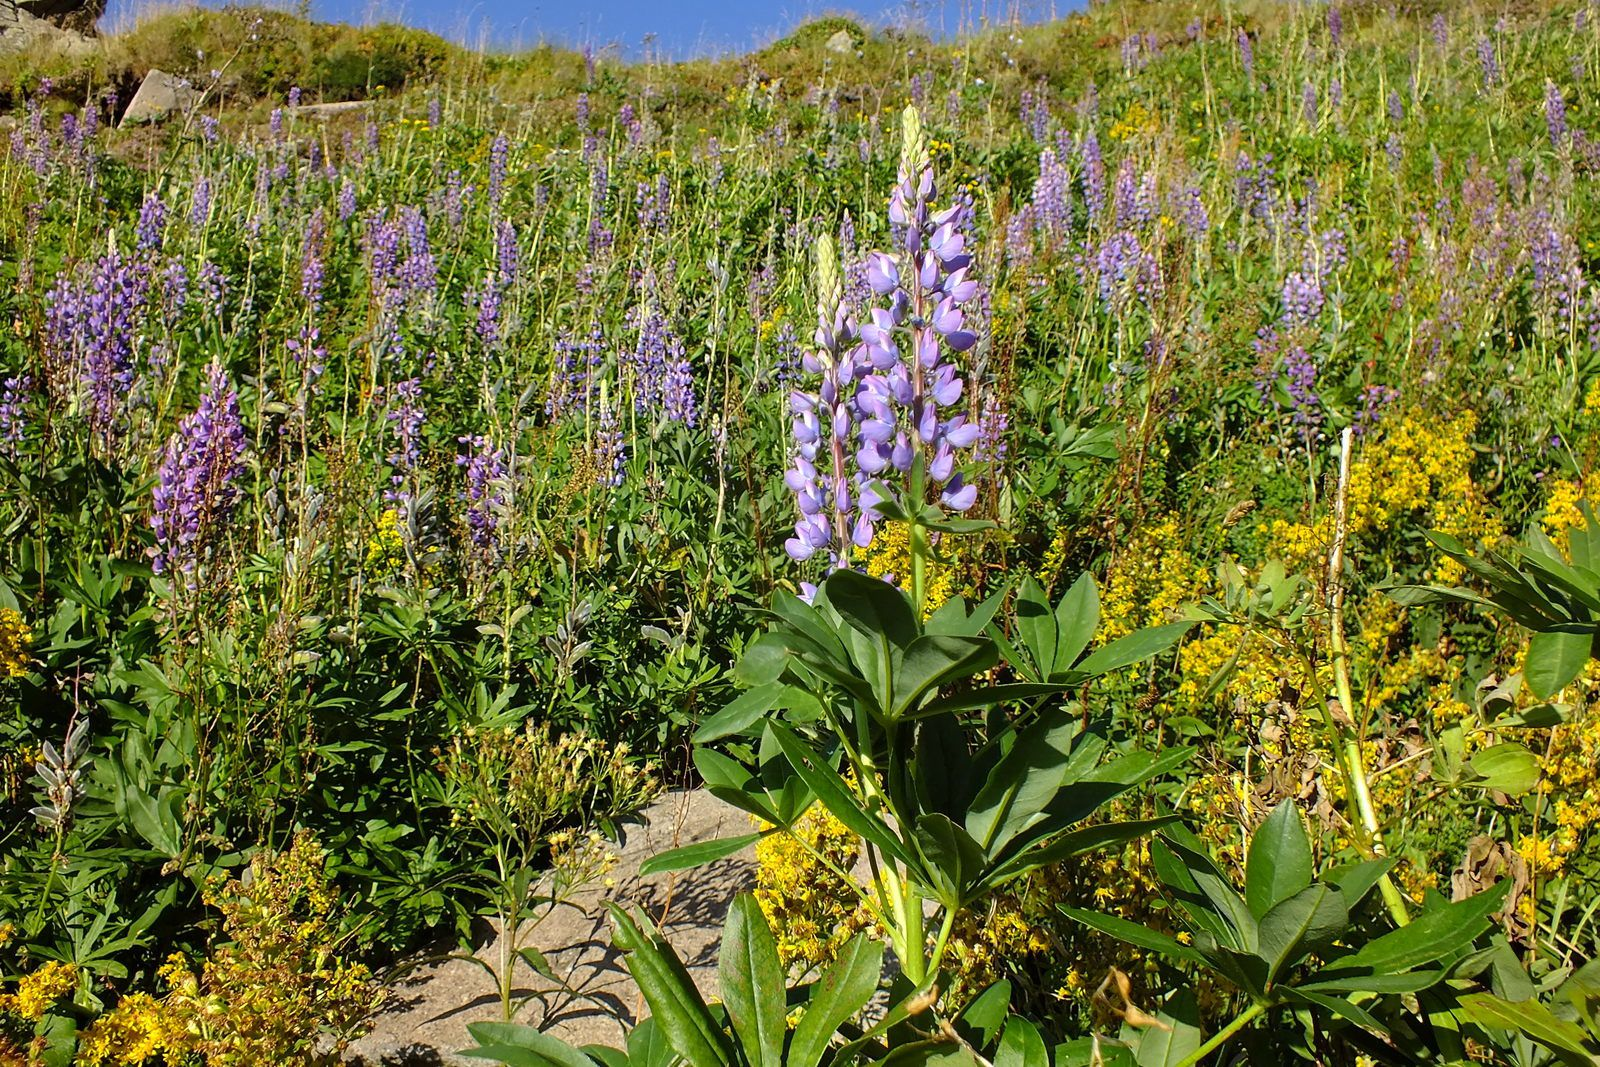 Au Puy Mary, des lupins